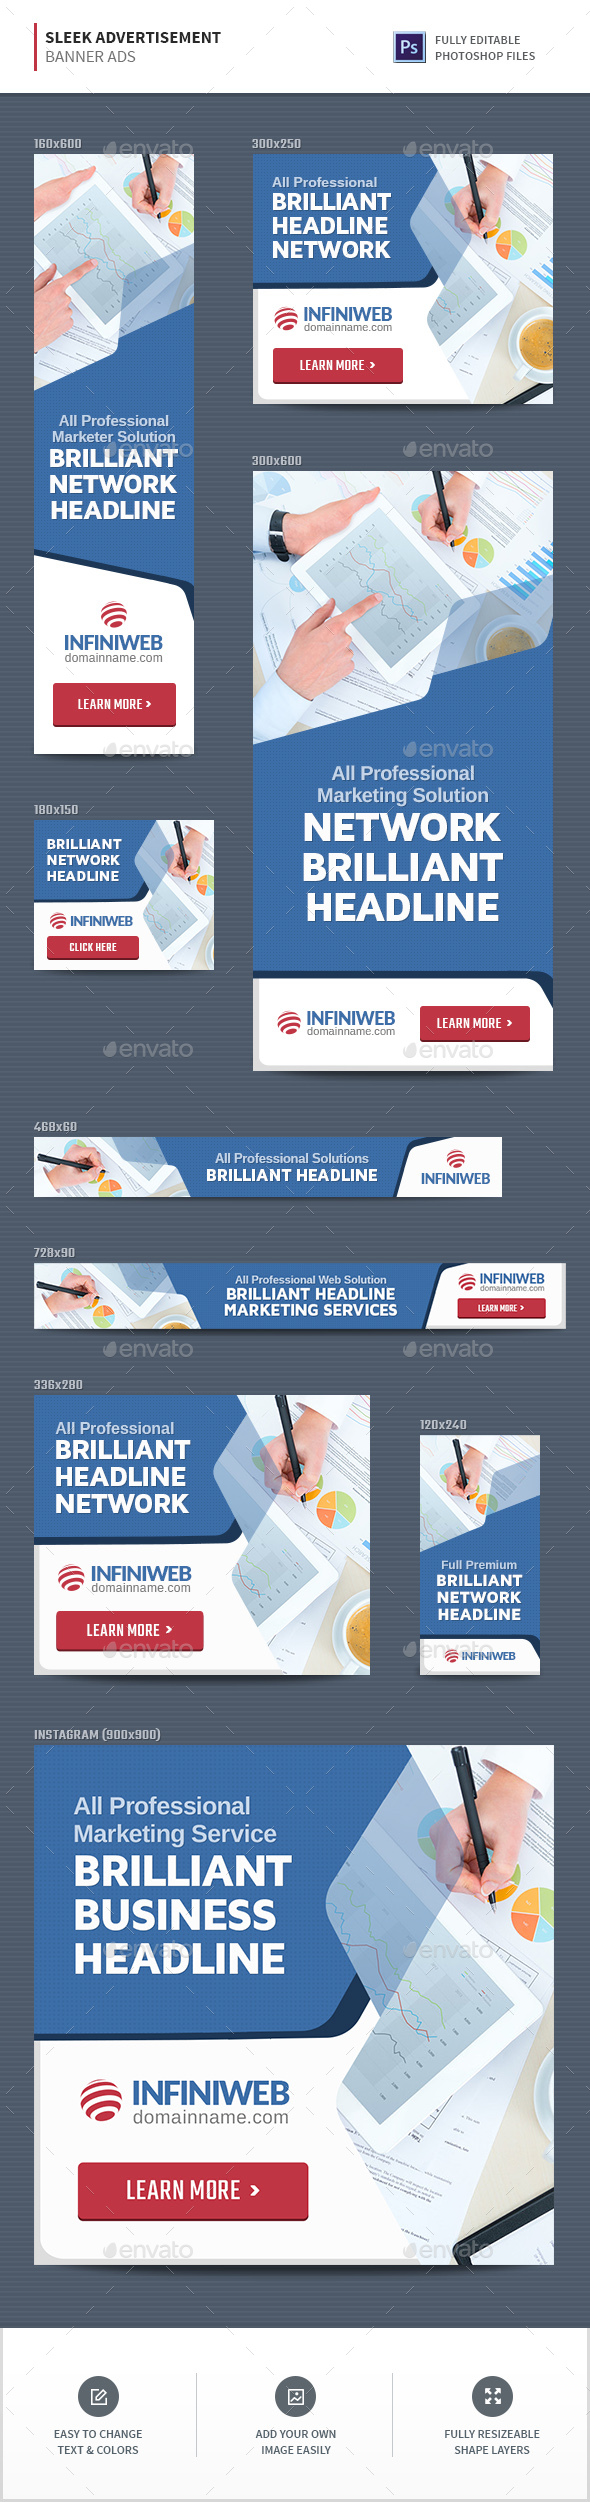 GraphicRiver Sleek Advertisement Banners 20377447